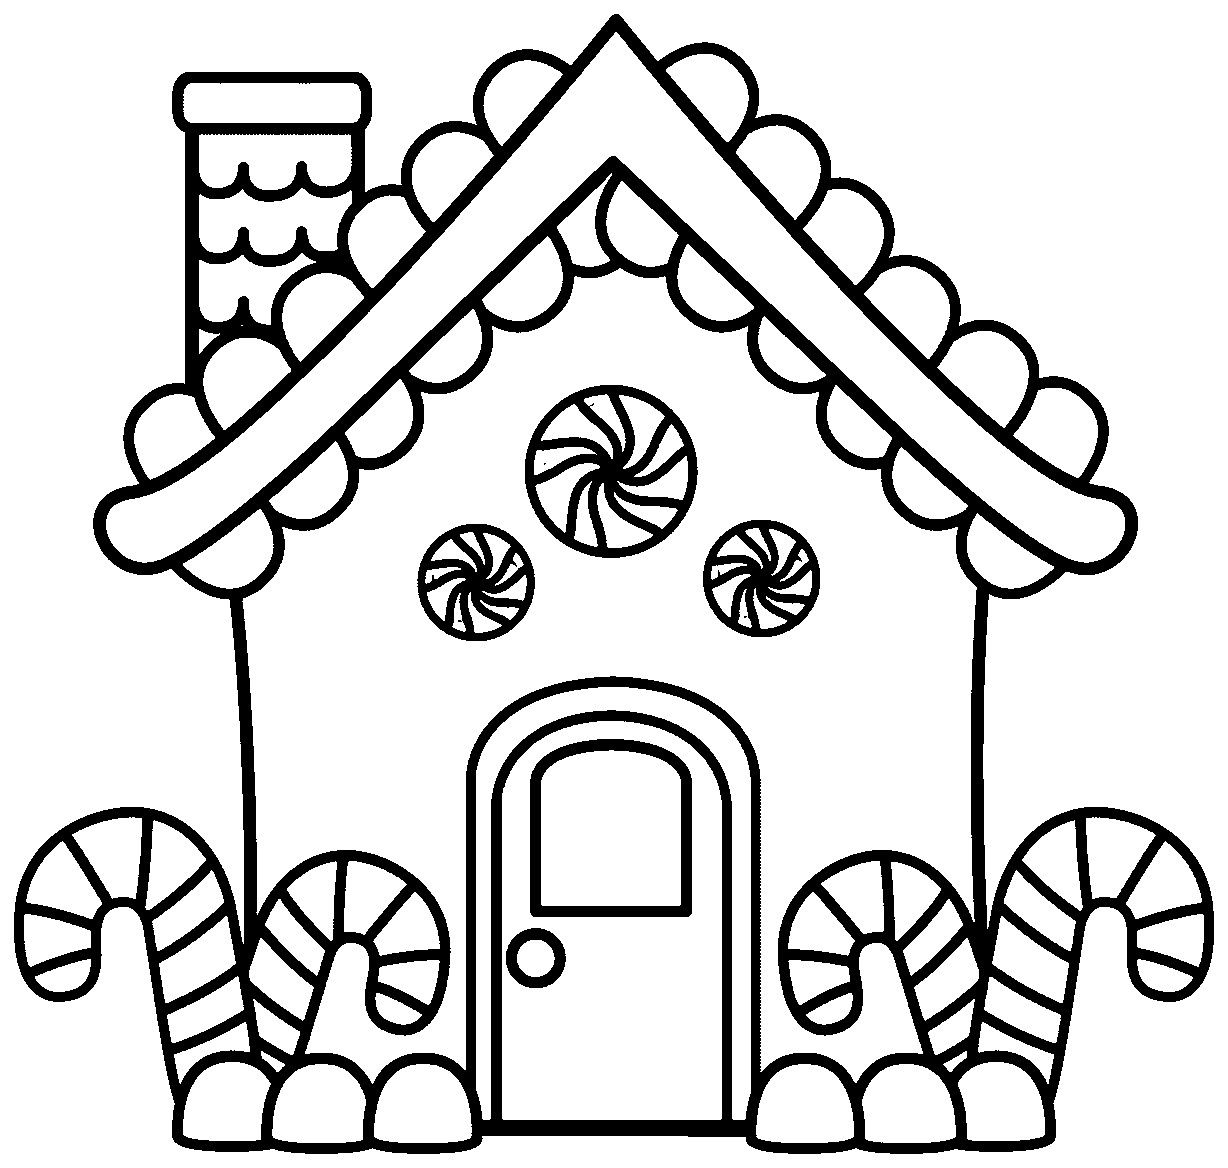 Gingerbread House Christmas Coloring Pages For Adults Pdf